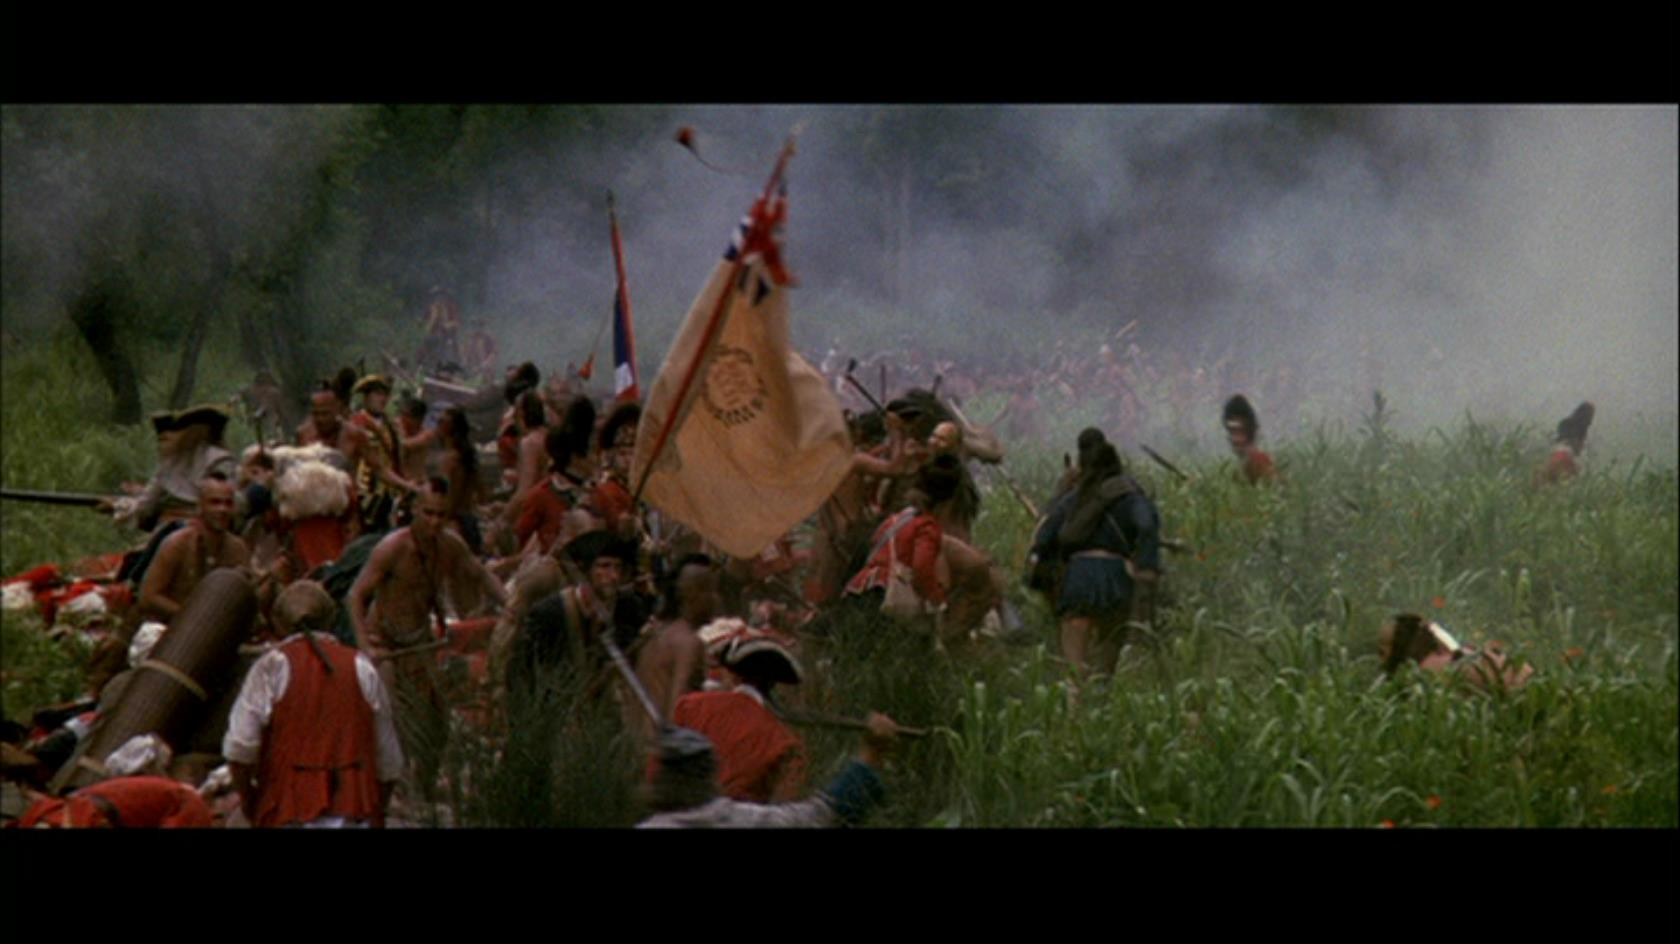 an analysis on the fighting style of the english in the movie last of the mohicans The last of the mohicans is a romance, a genre deriving from the british romantic movement of the early nineteenth century that emphasizes imagination over reason and allows for comedy cooper uses history as a frame and fills it with the imaginative movements of the romance plot.